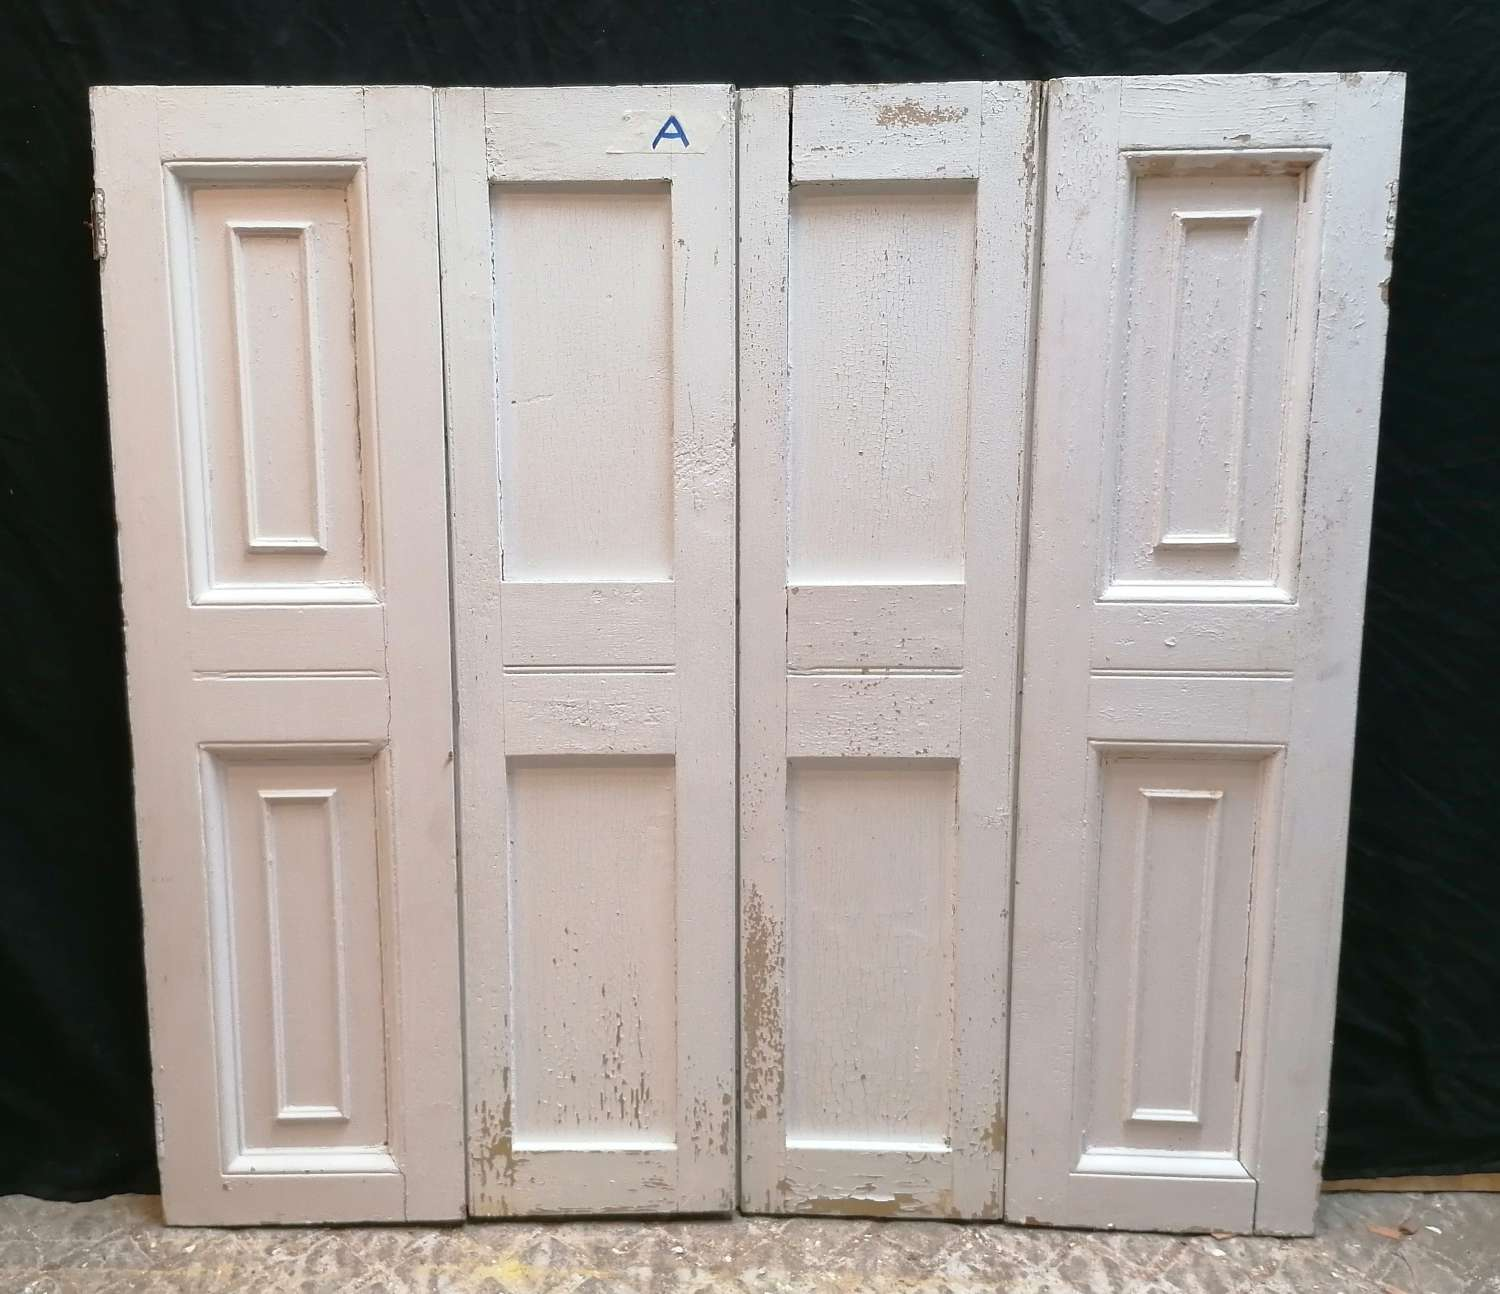 CS0043 RECLAIMED PAINTED PINE SET OF 4 SHUTTERS - 3 SETS- SOLD SEP